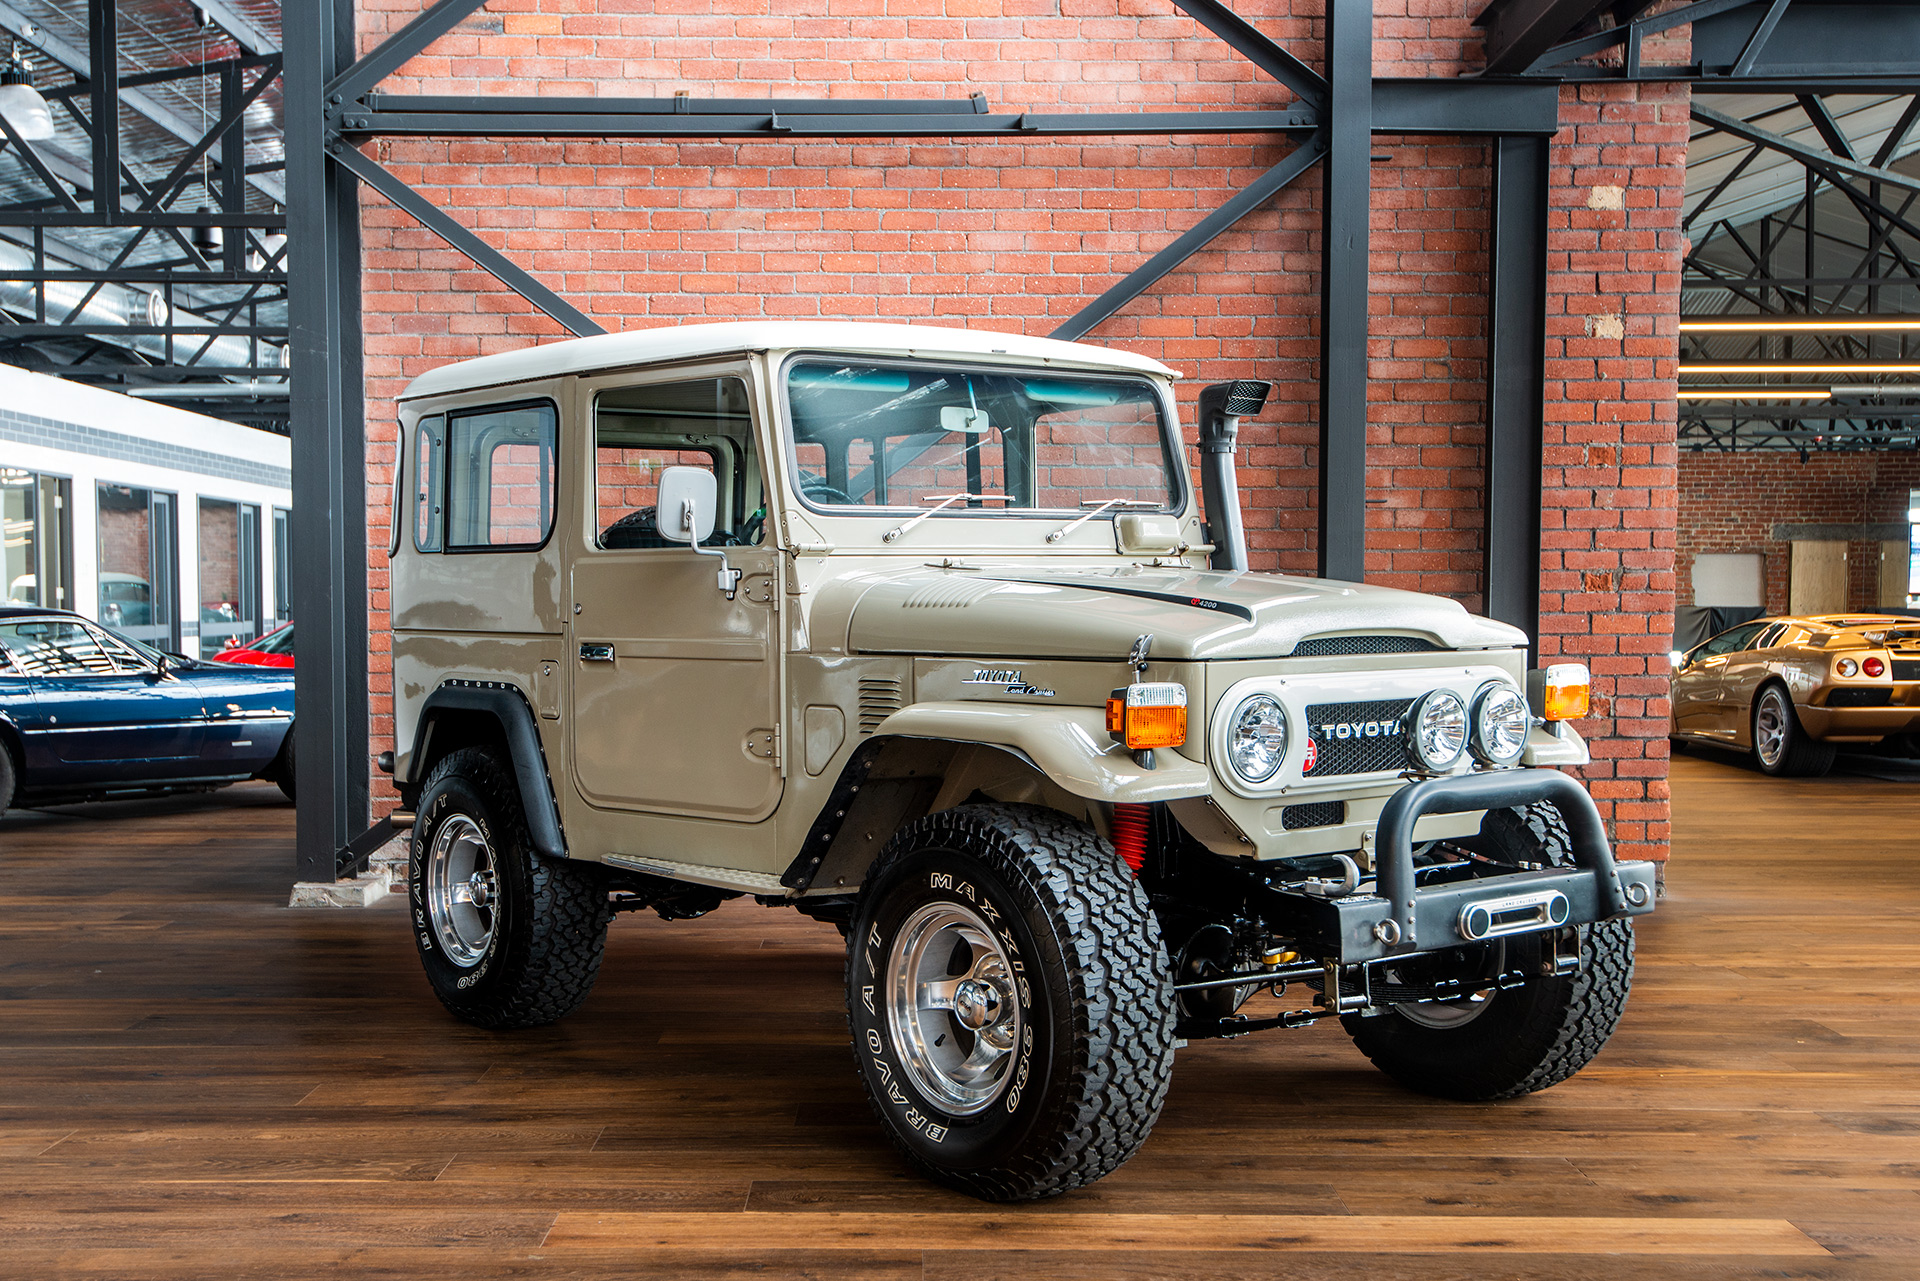 1977 Toyota Land Cruiser FJ40 Hardtop - Richmonds ...